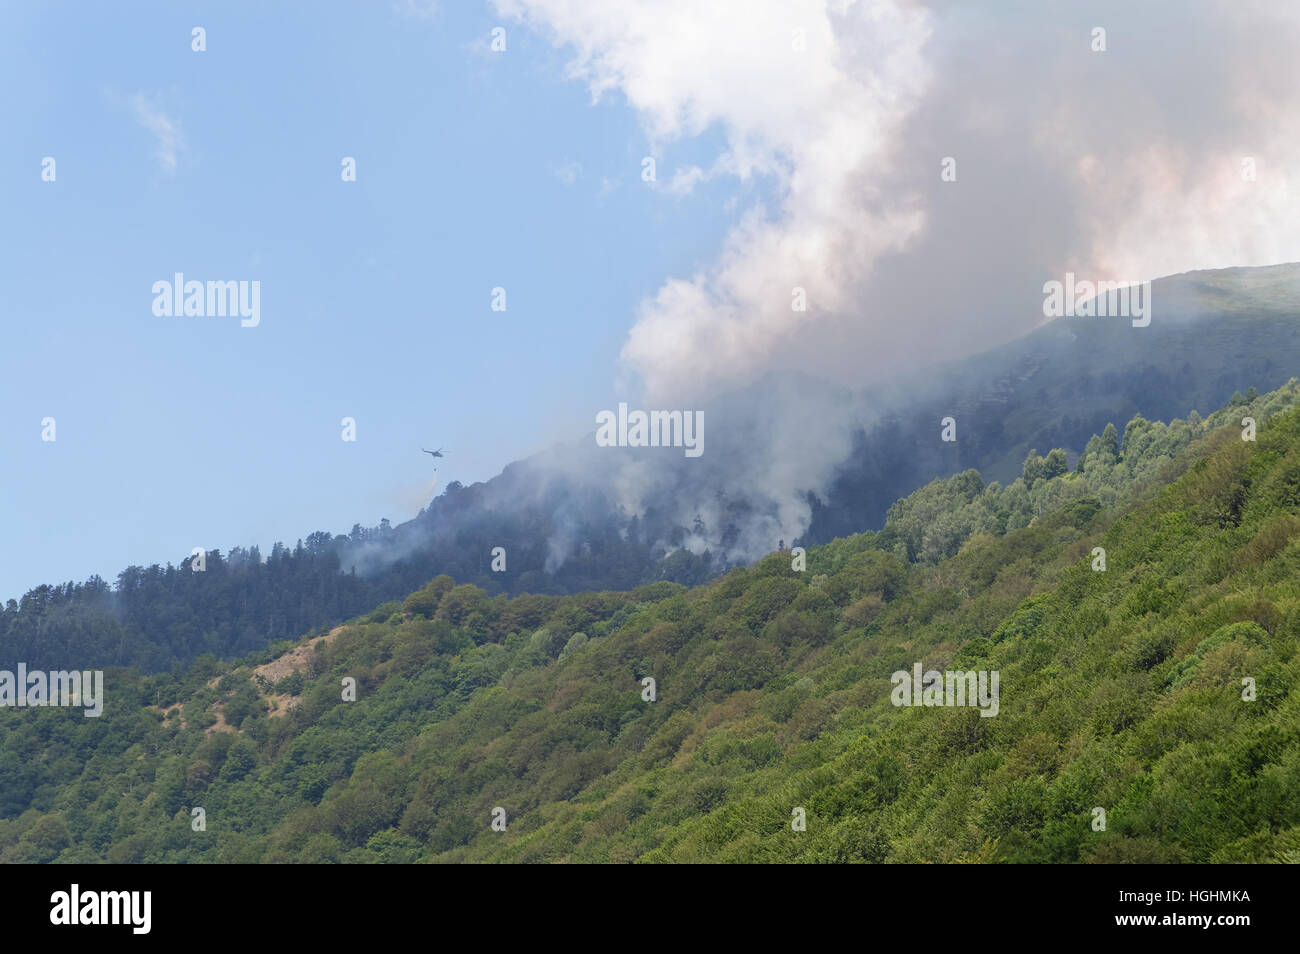 Helicopter fighting widely spread mountain forest fire in Rila Mountain, Bulgaria - Stock Image